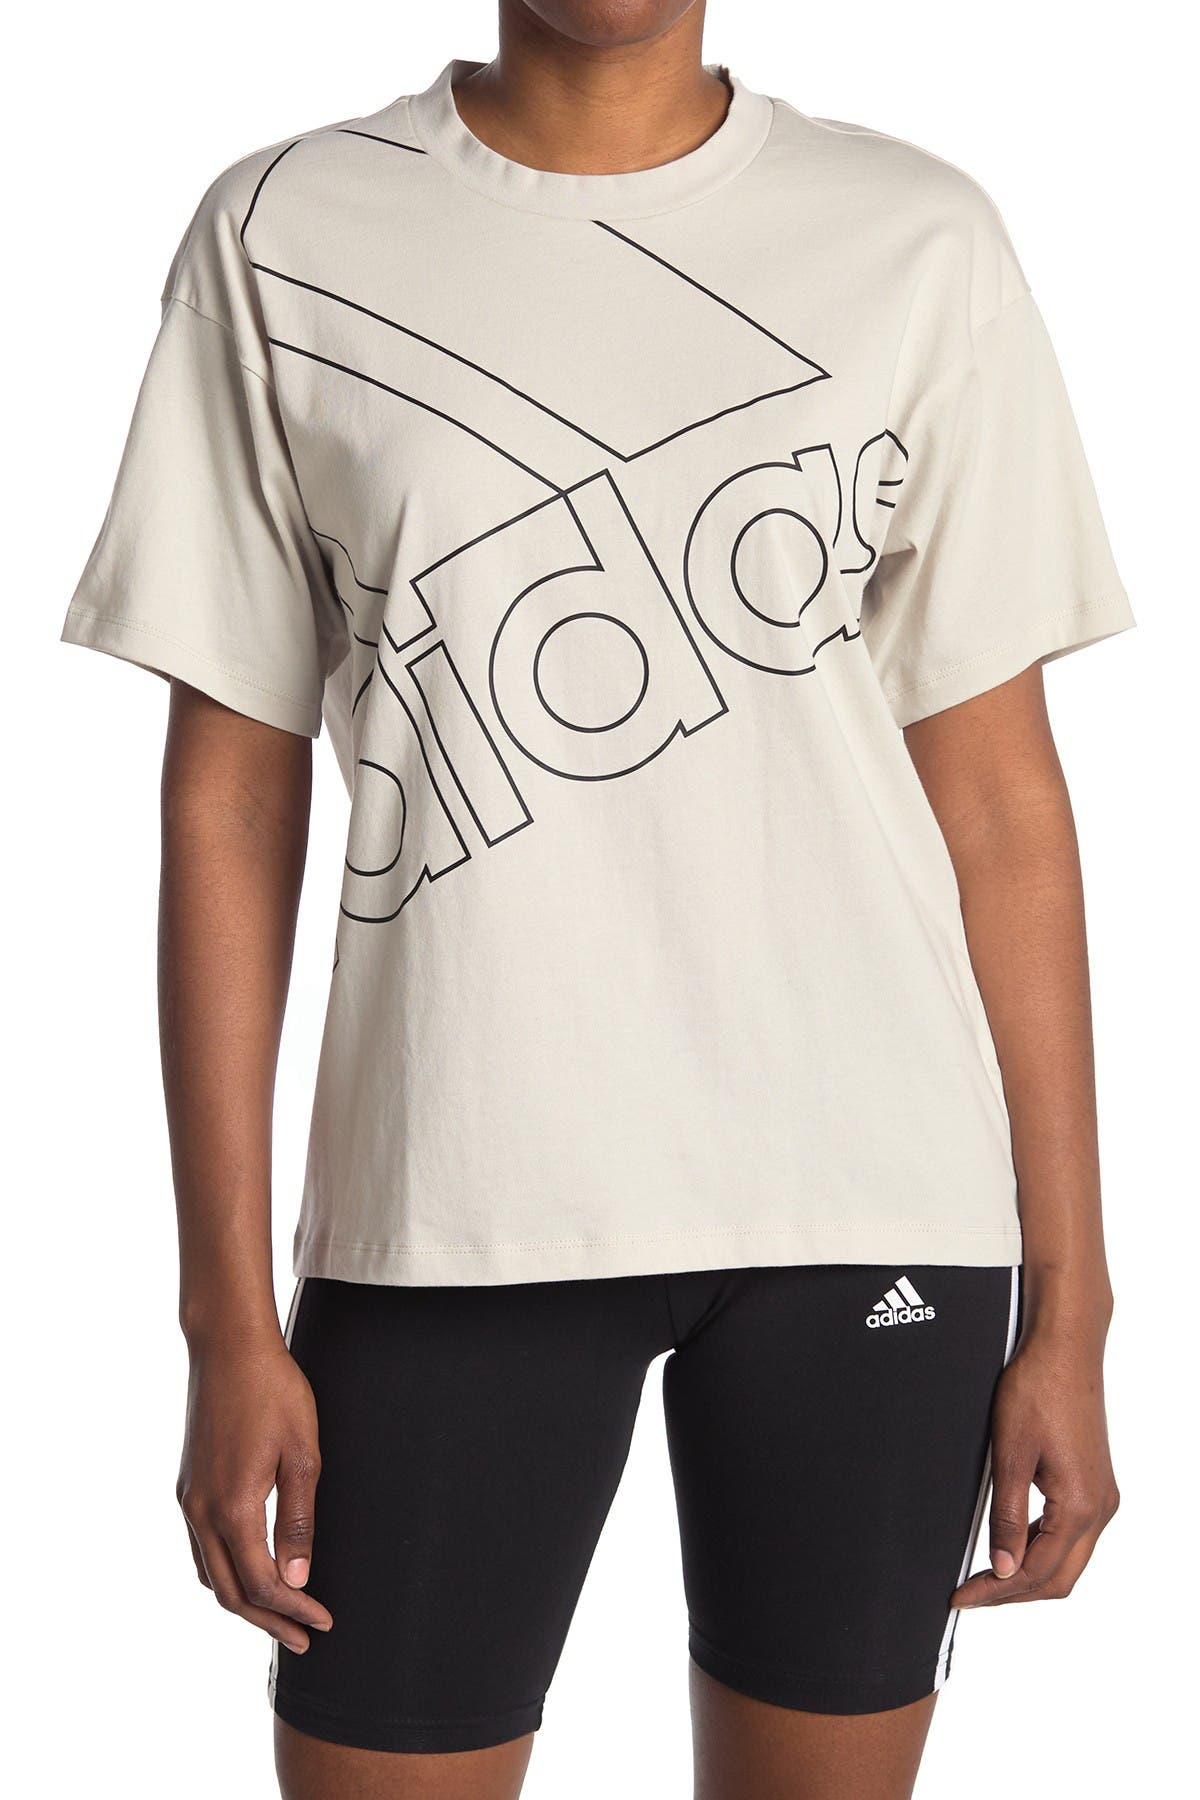 Image of adidas Favorite Q1 T-Shirt